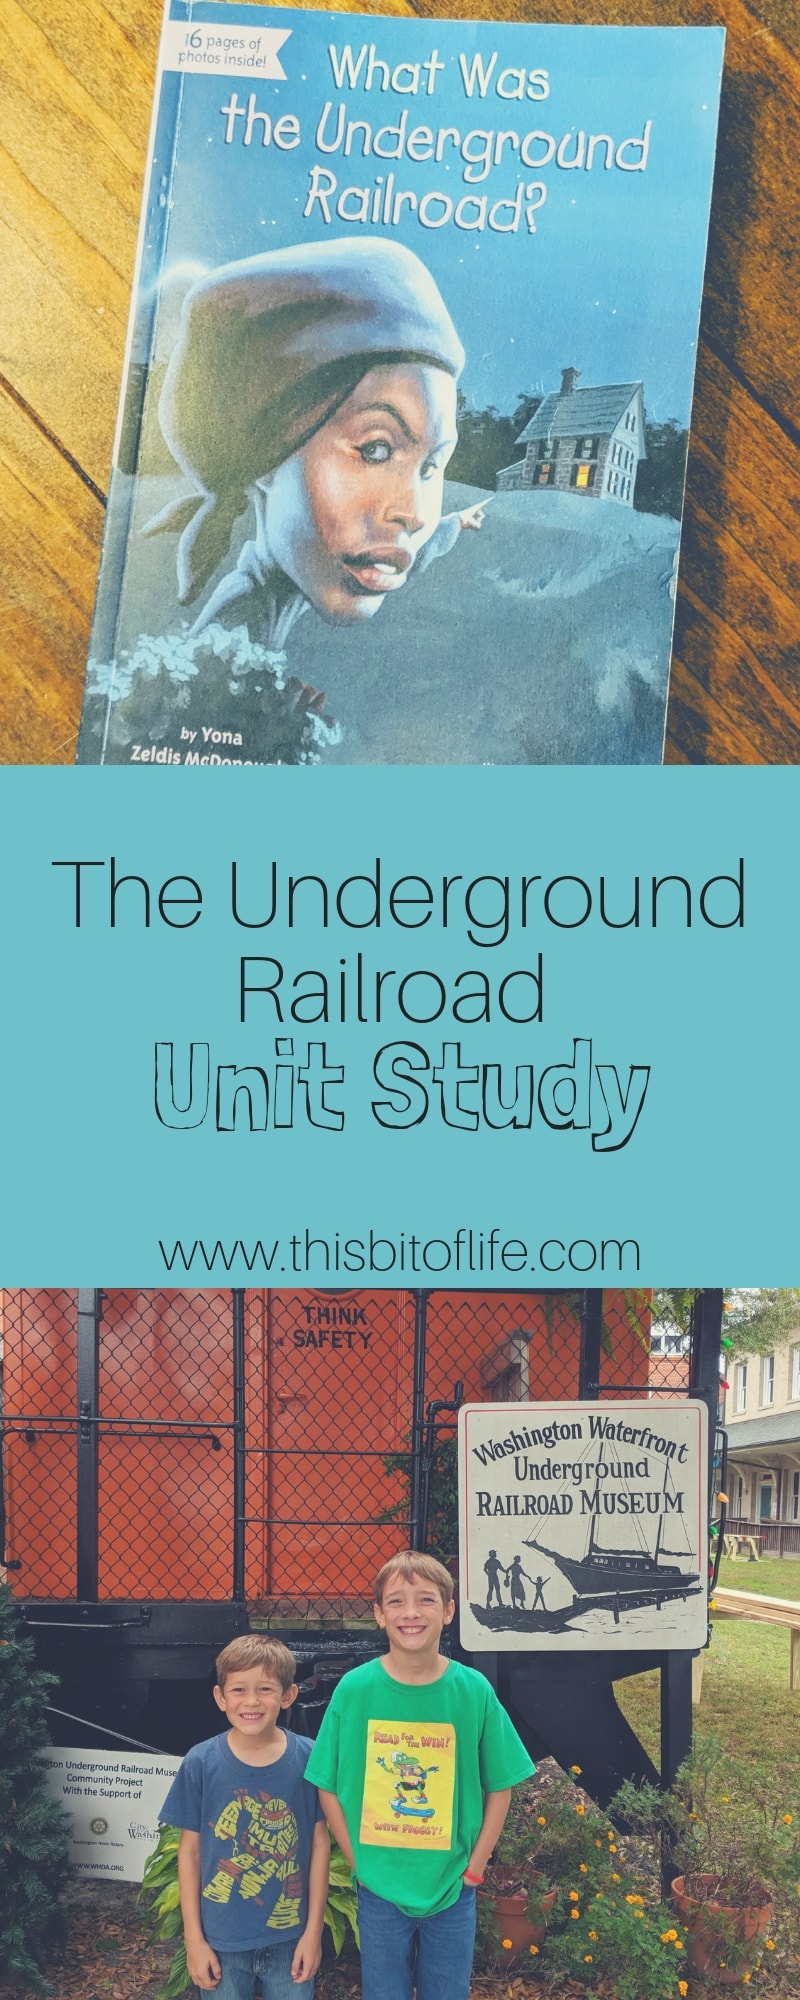 the underground railroad unity study